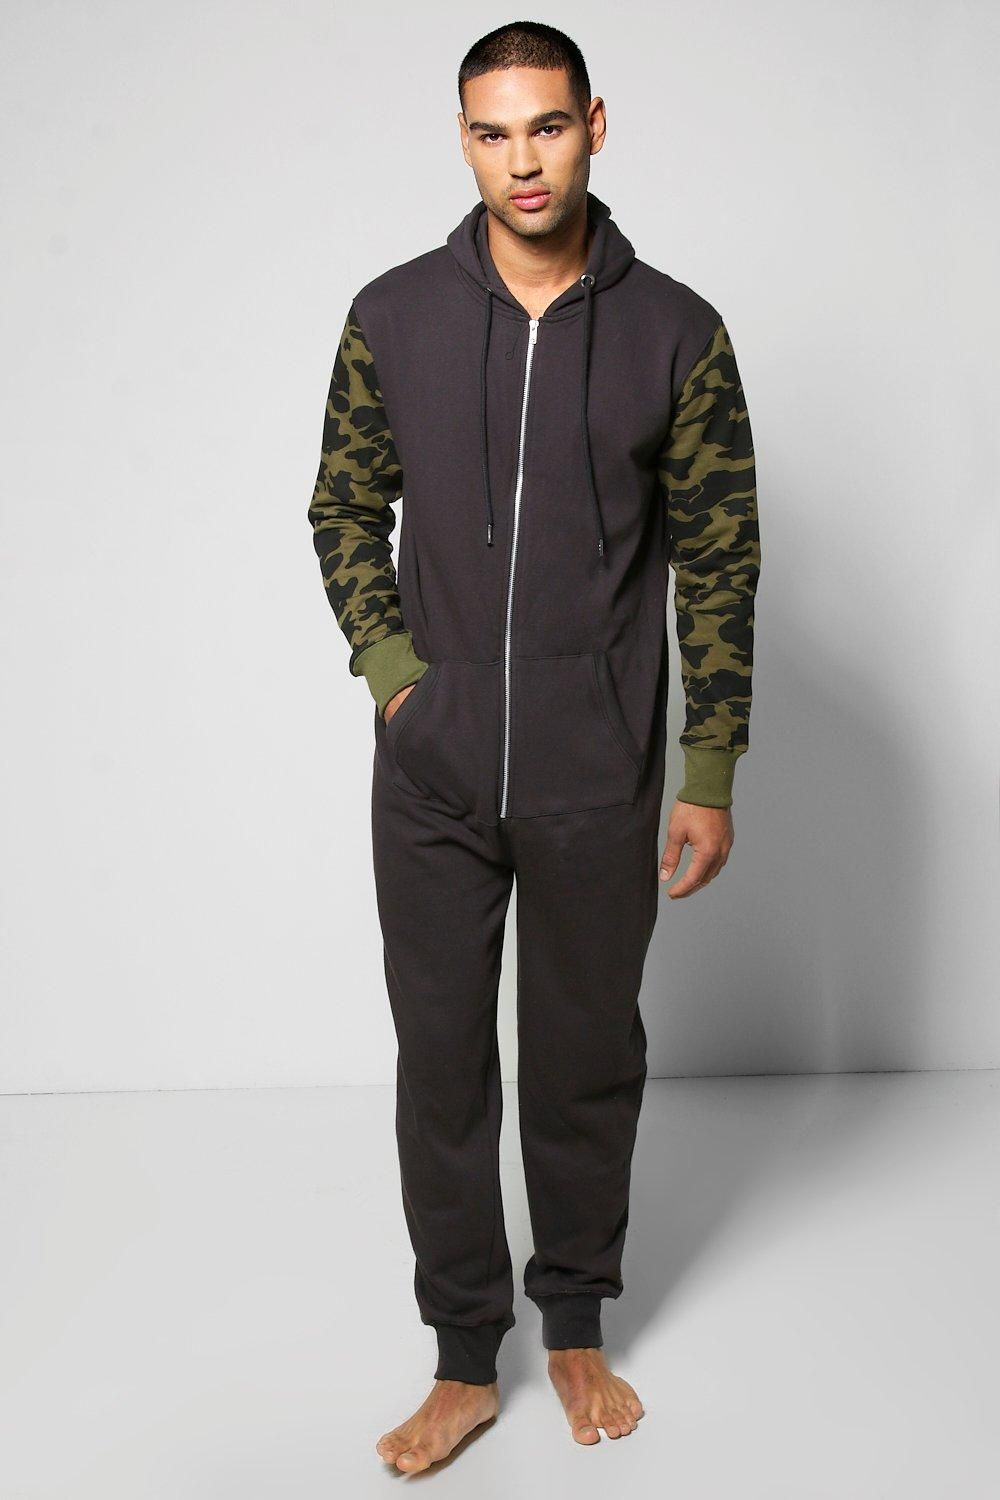 Hooded Camo Mens Onesie Mens Fashion Trends Clothing For This Season Mens Onesie Mens Fashion Trends Mens Outfits [ 1500 x 1000 Pixel ]